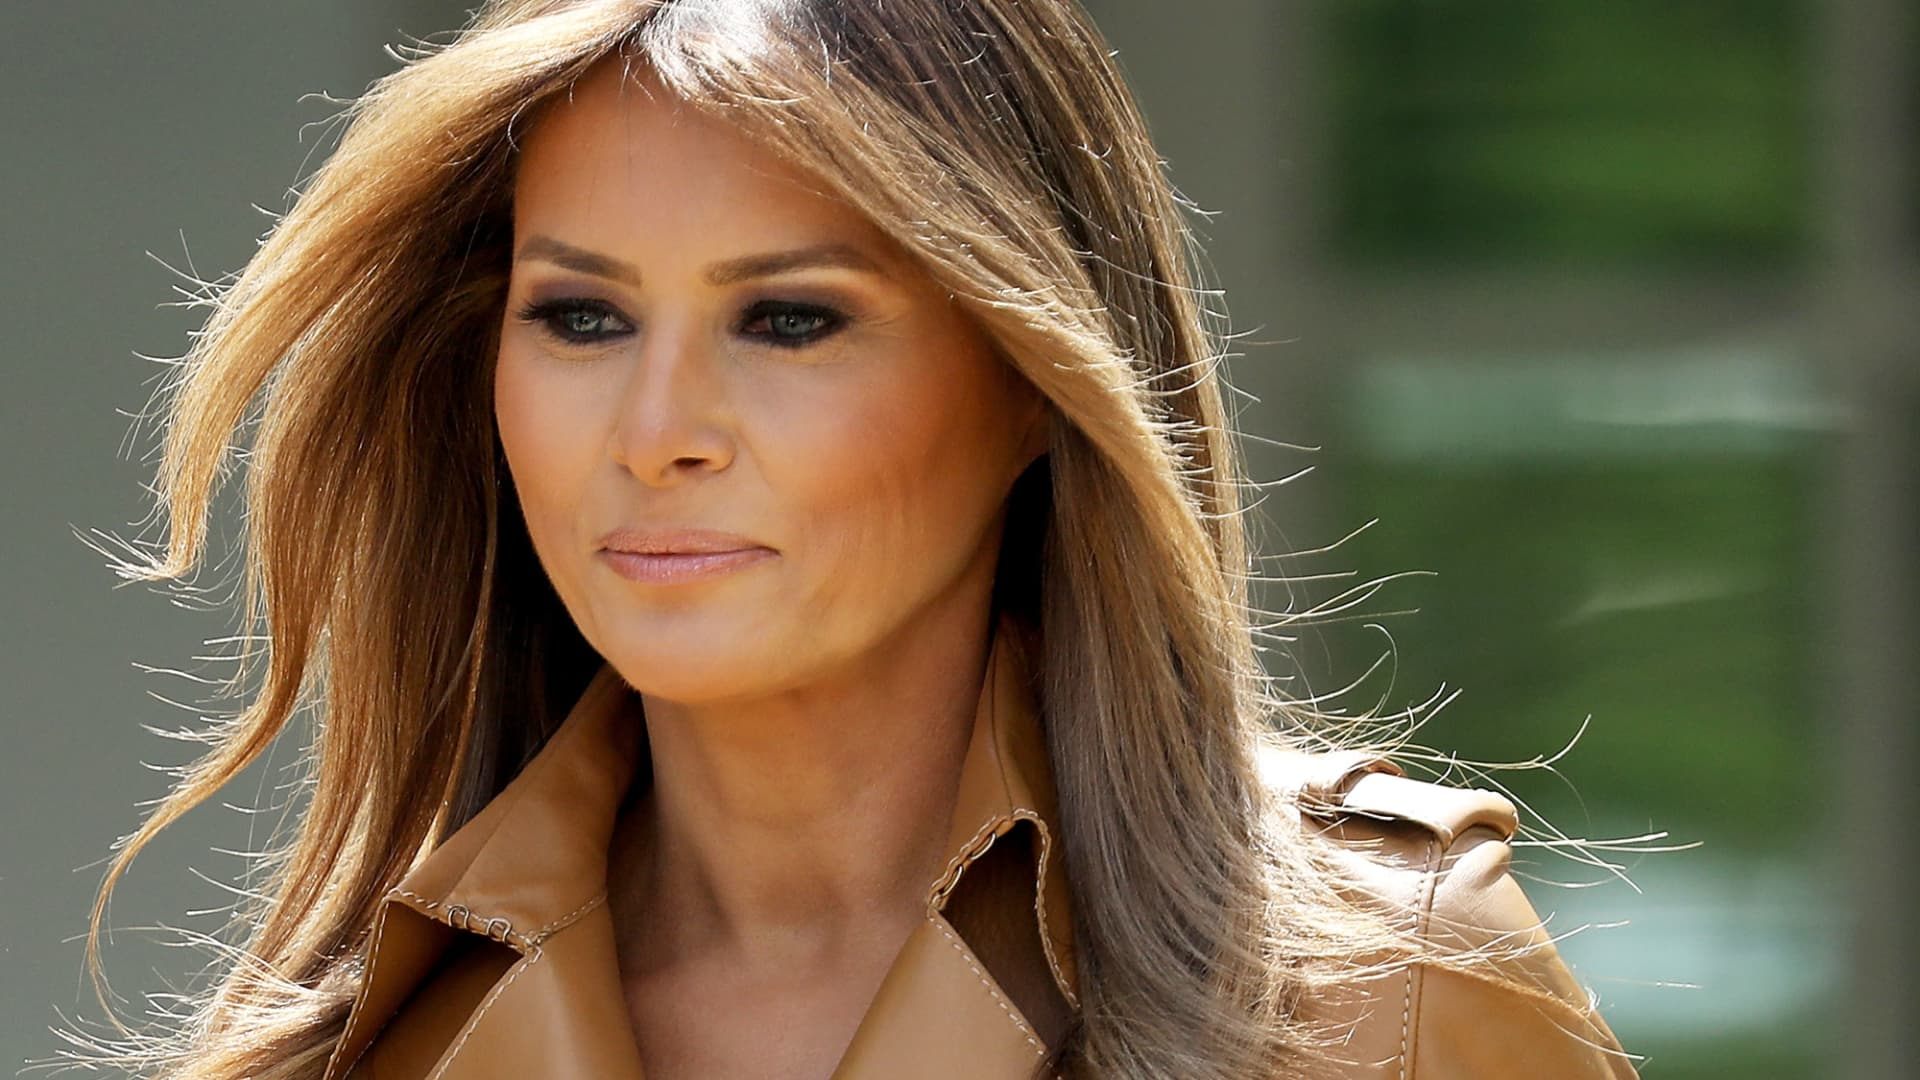 U.S. first lady Melania Trump arrives in the Rose Garden to speak at the White House May 7, 2018 in Washington, DC.